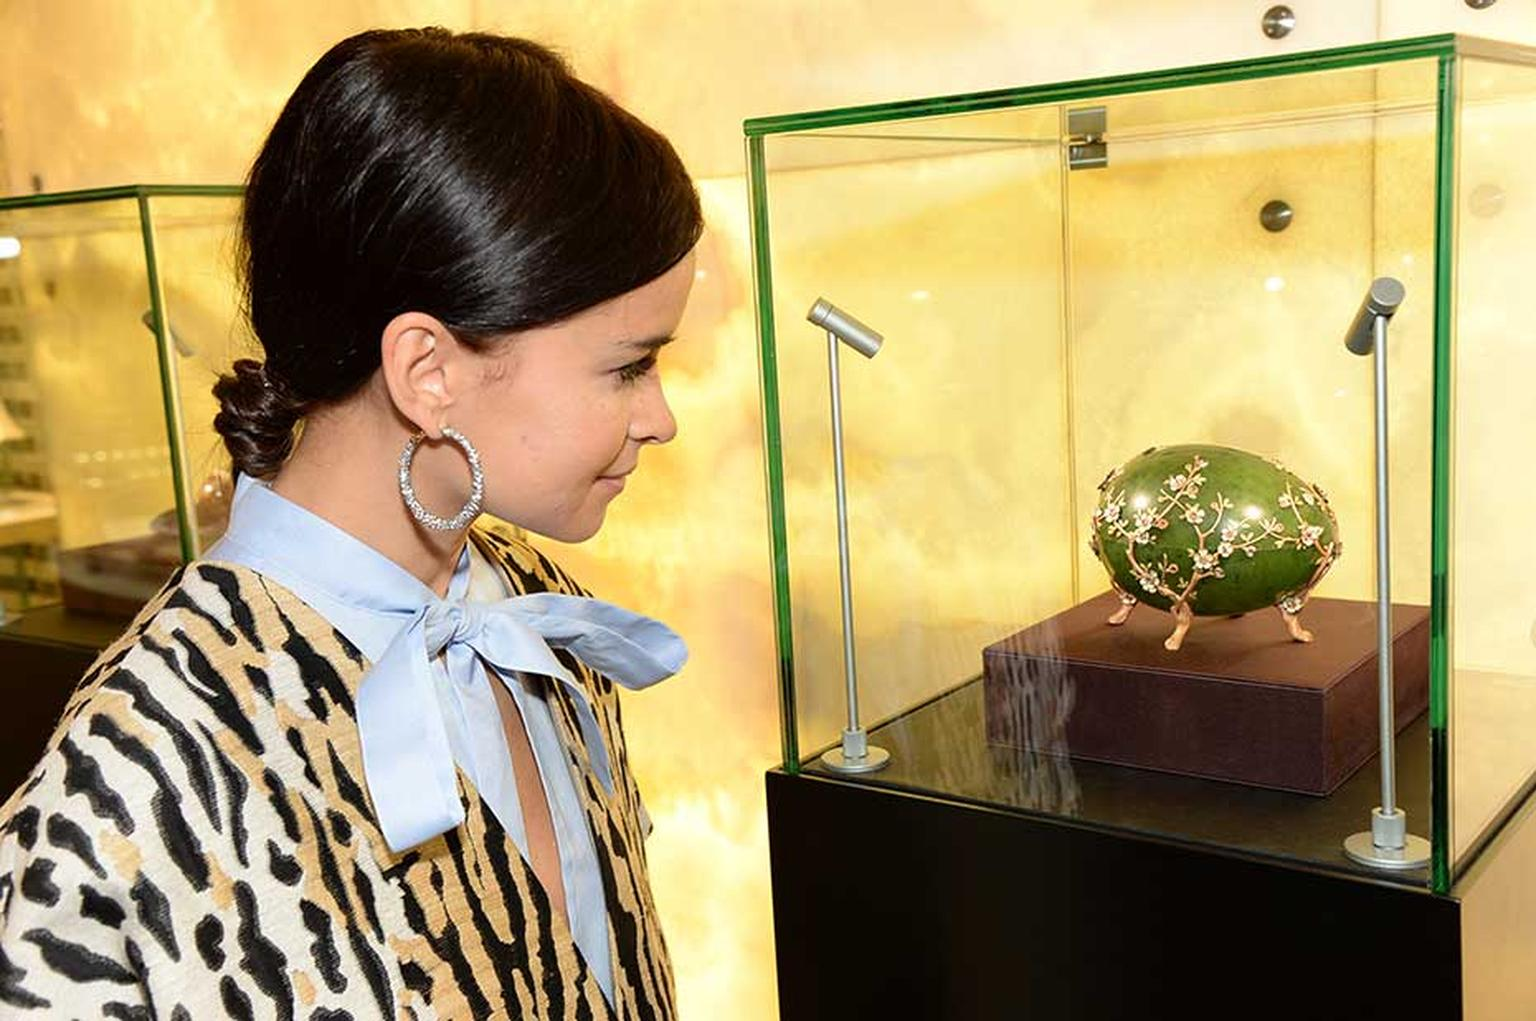 Miroslava Duma with the Fabergé 1901 Apple Blossom egg during the 'A Fabergé Easter at Harrods' event which runs until the 21st of Aoril.